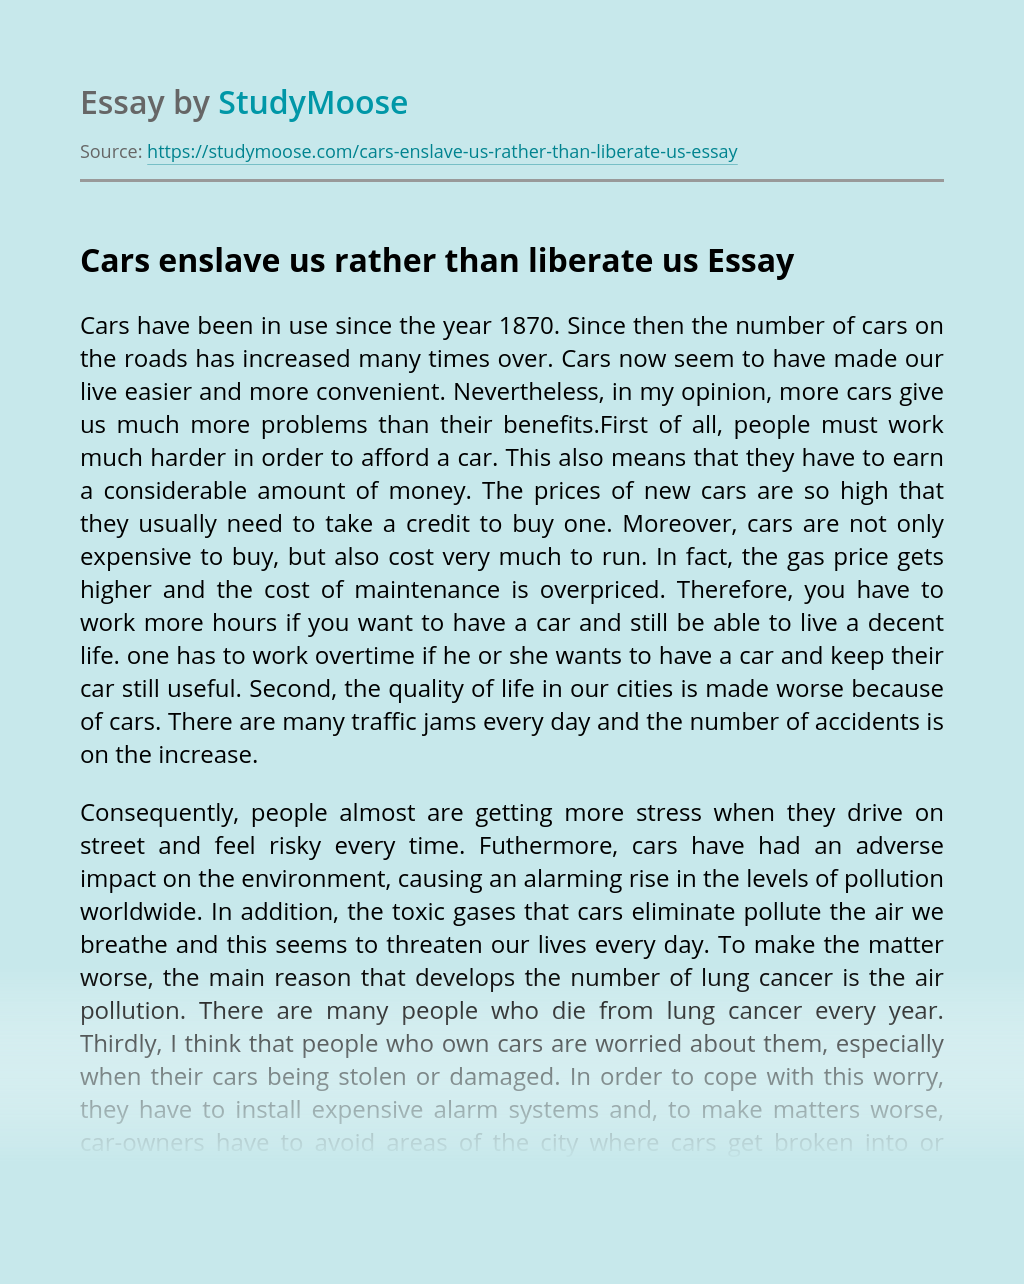 Cars enslave us rather than liberate us